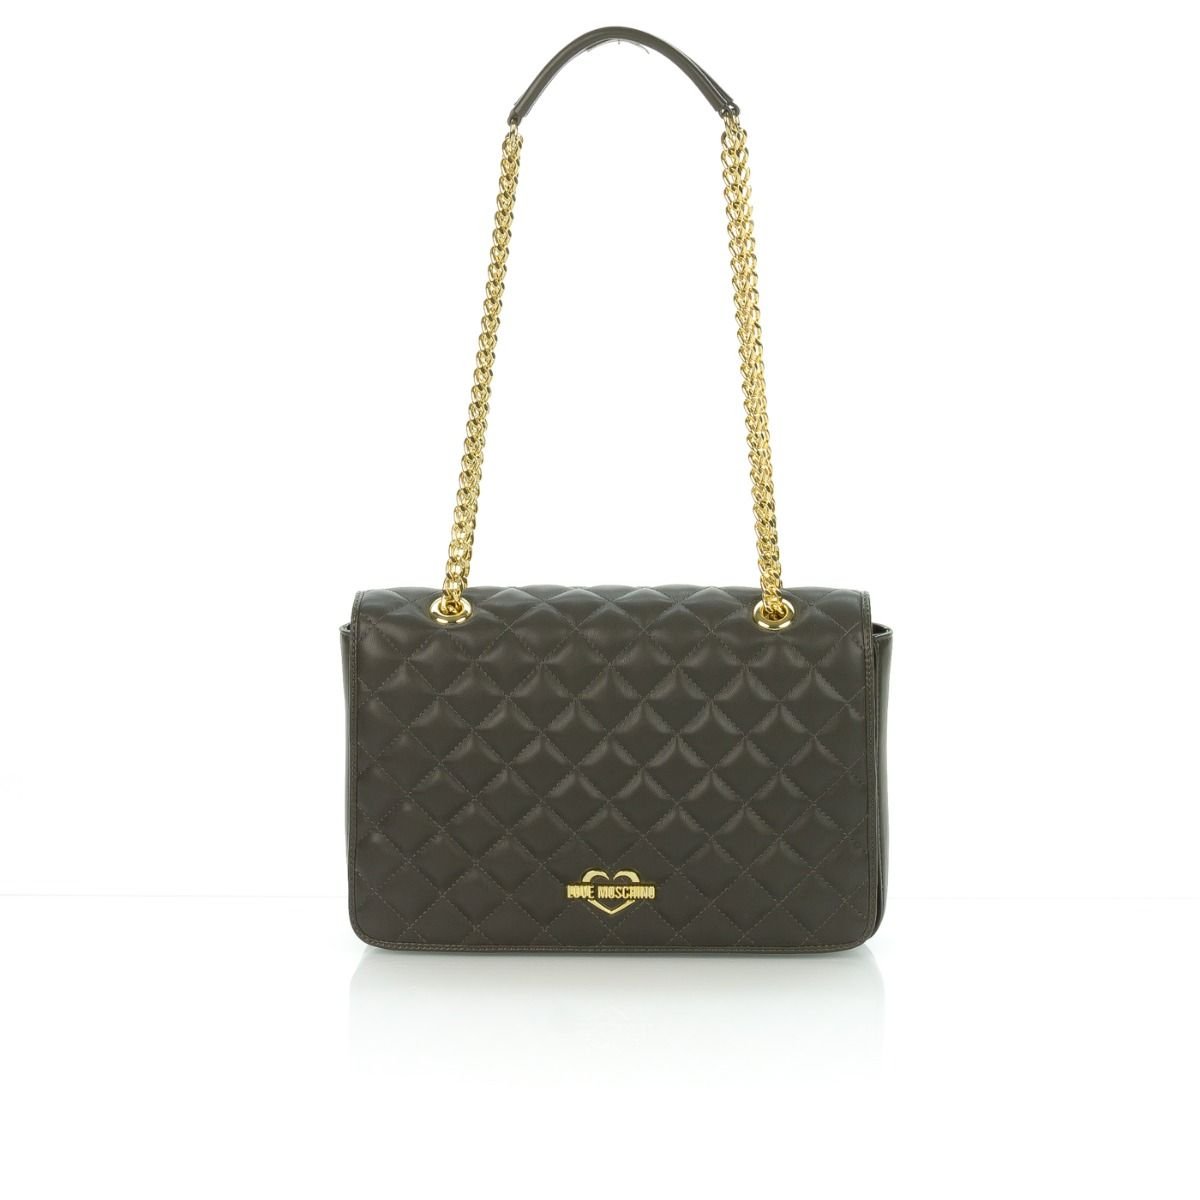 LOVE MOSCHINO SUPER QUILTED ce466dfa1ee